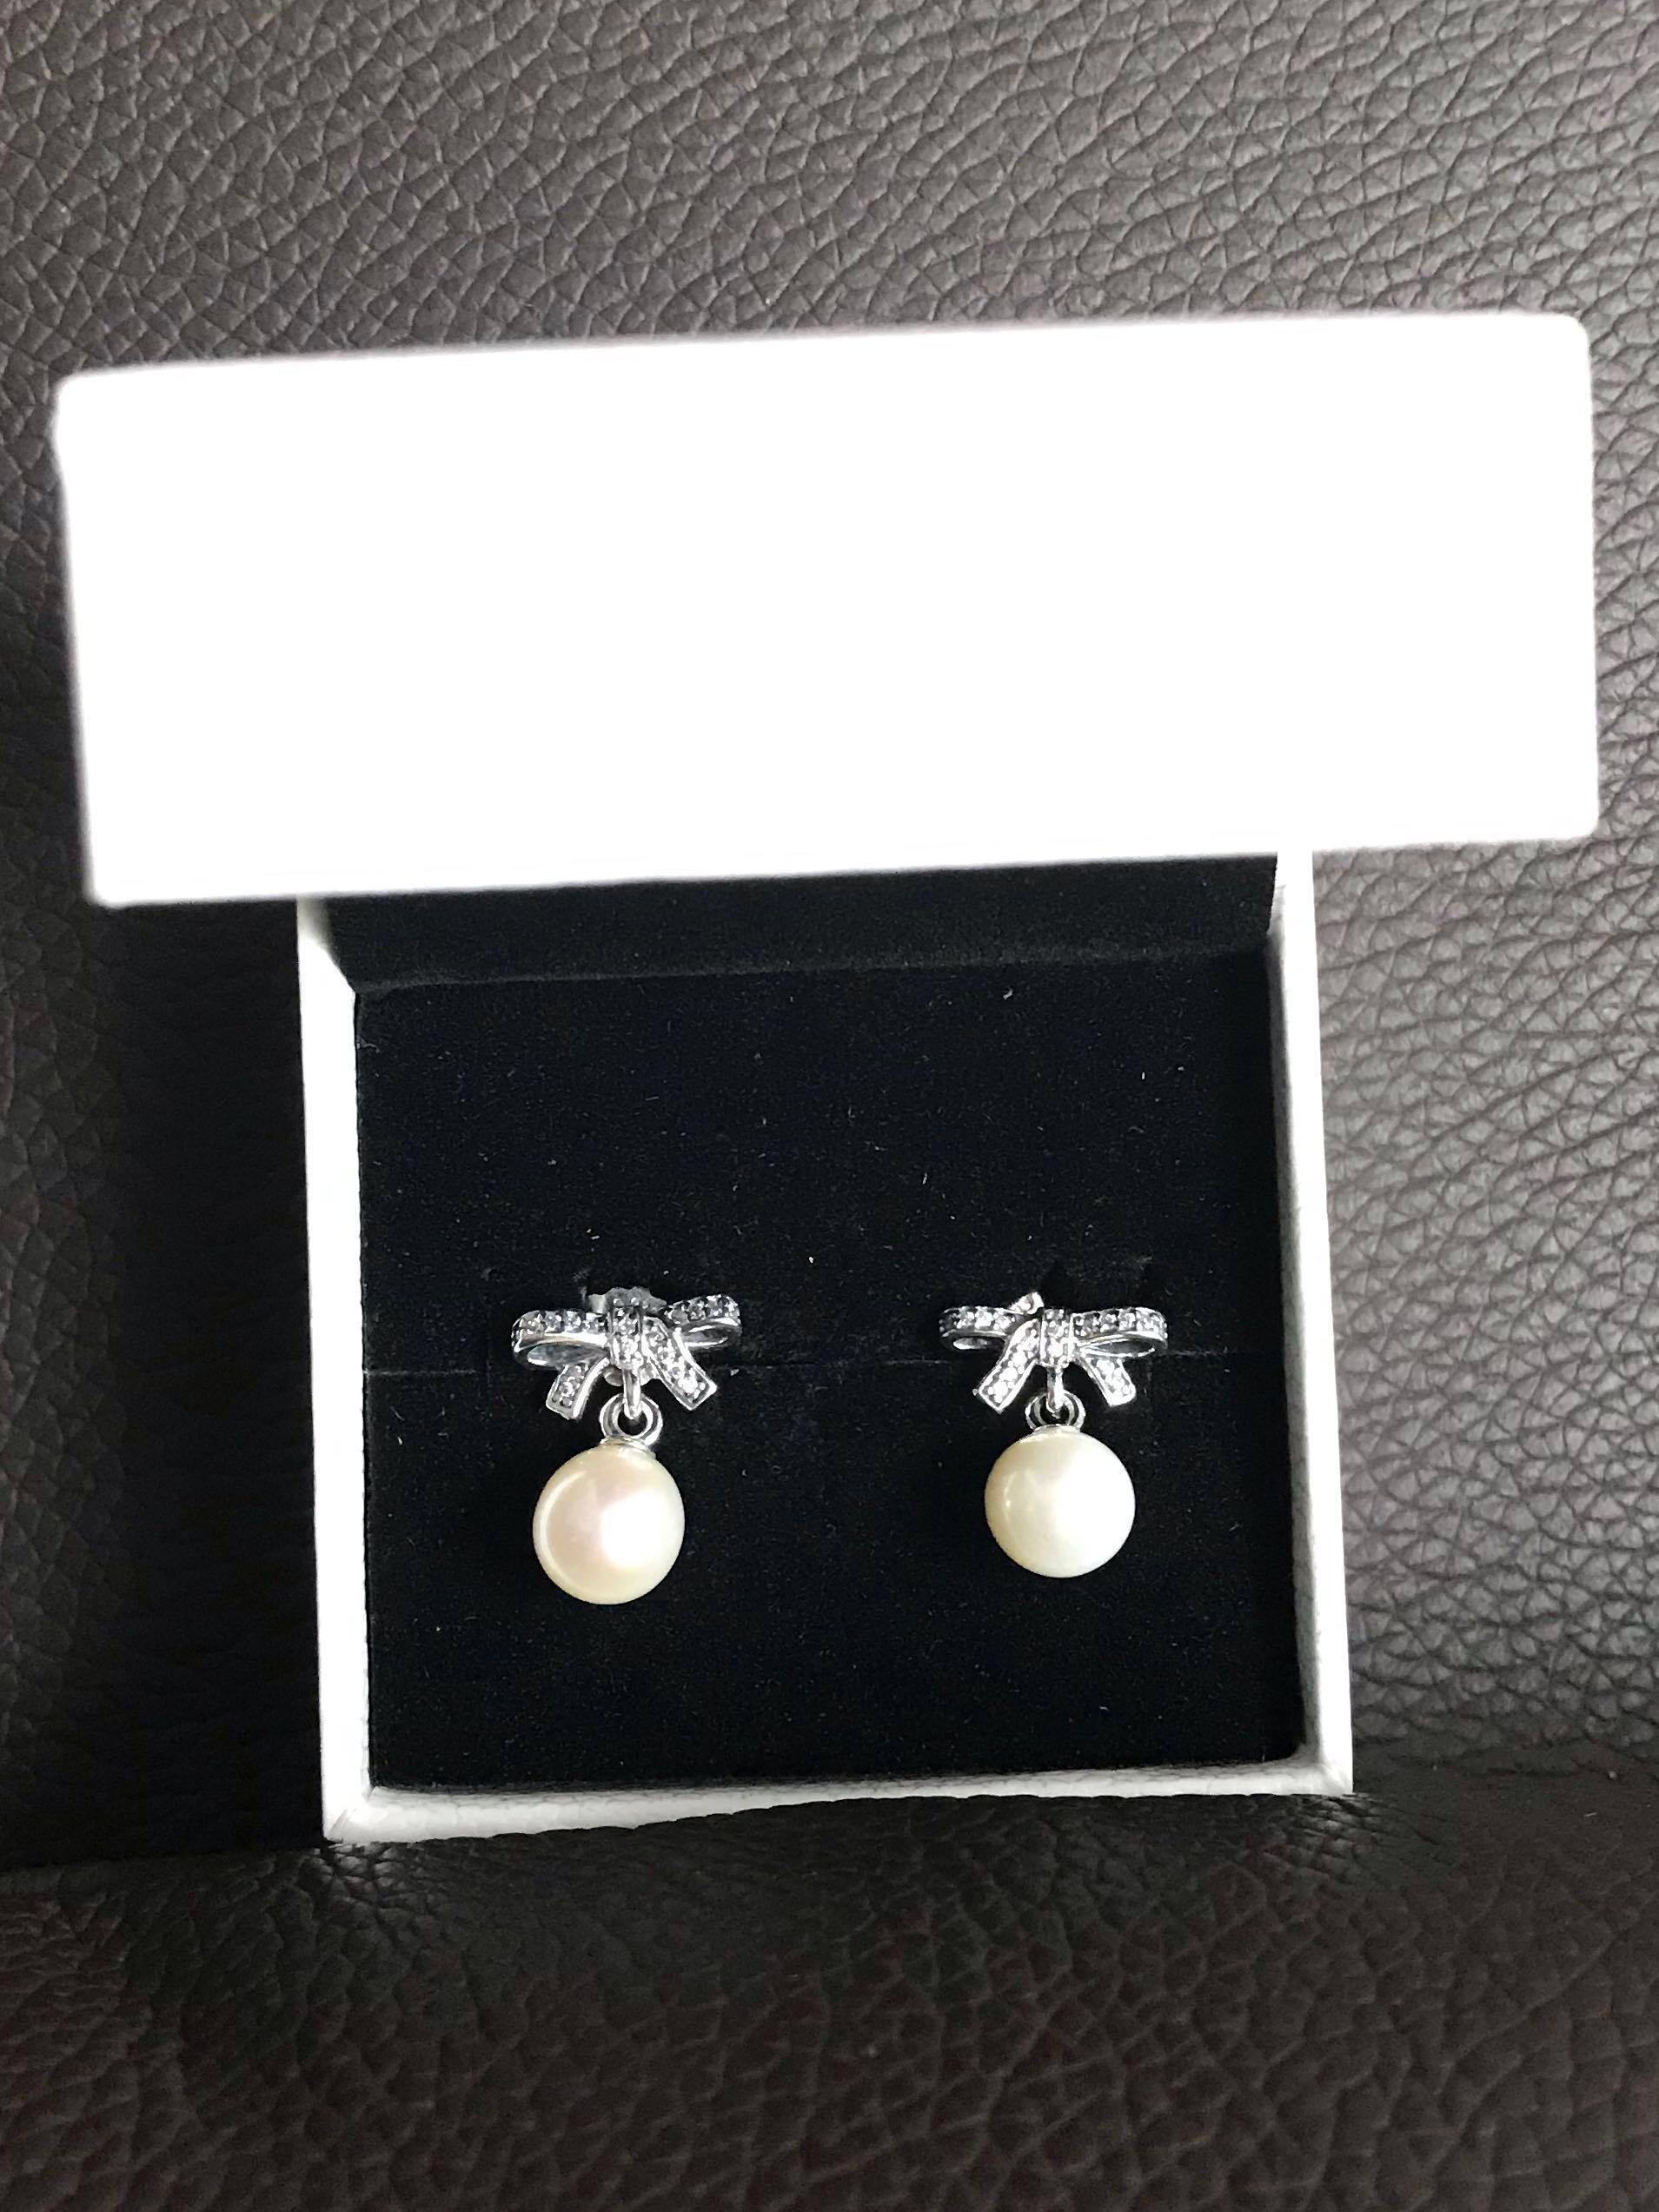 67abc6ae4 Pandora Delicate Sentiments, White Pearl & Clear CZ Earrings, Women's  Fashion, Accessories, Others on Carousell